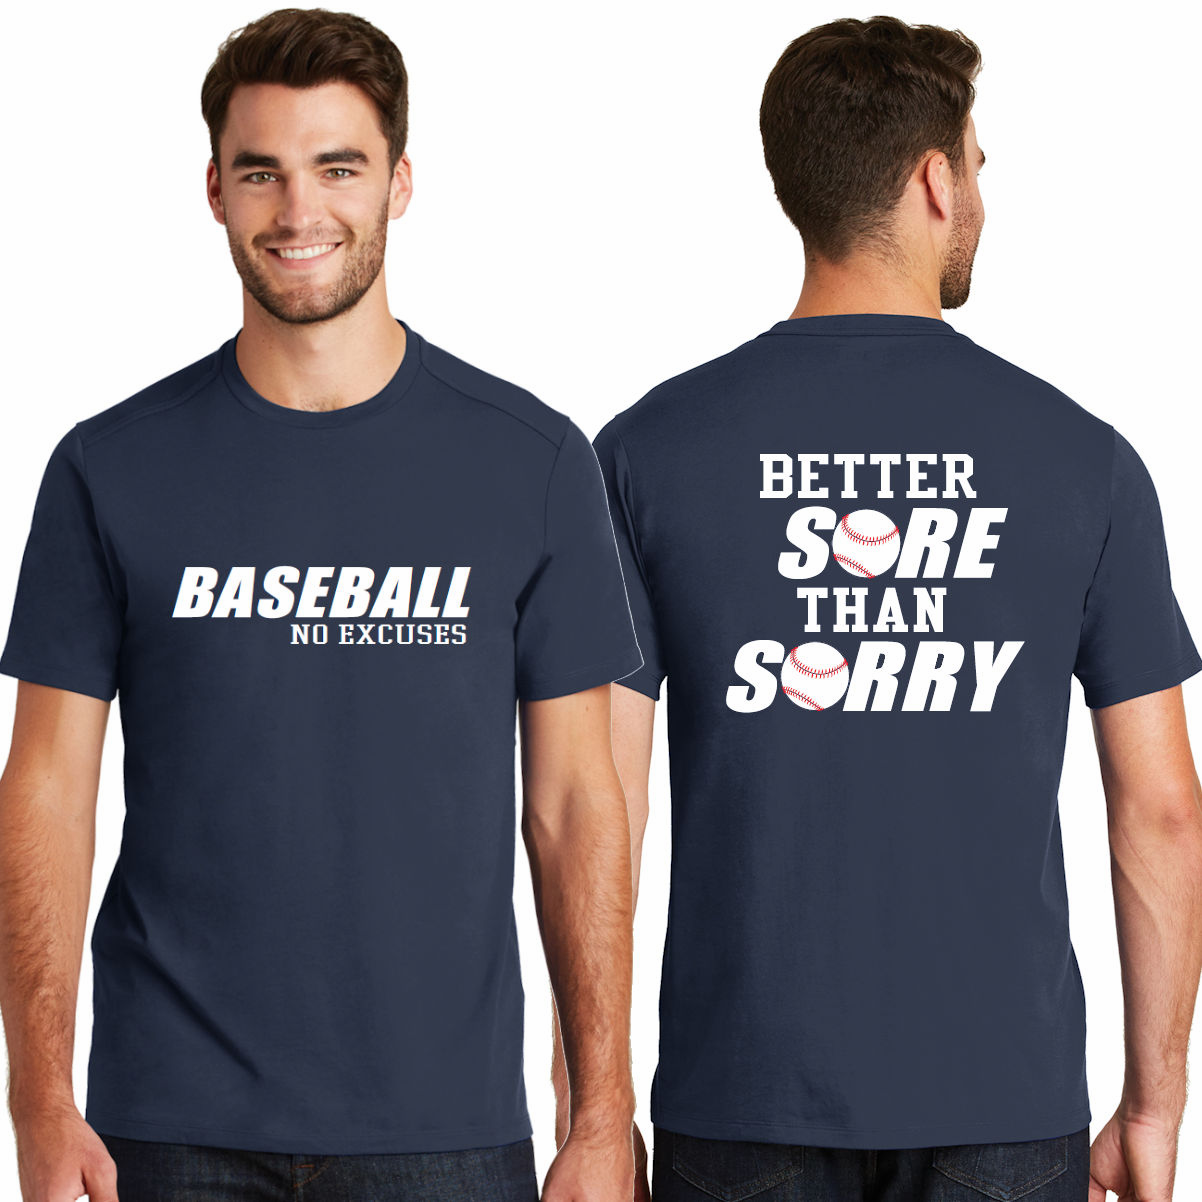 Baseball No Excuses Better Sore Than Sorry T-Shirt<br>Choose Your Color<br>Youth Med to Adult 4X